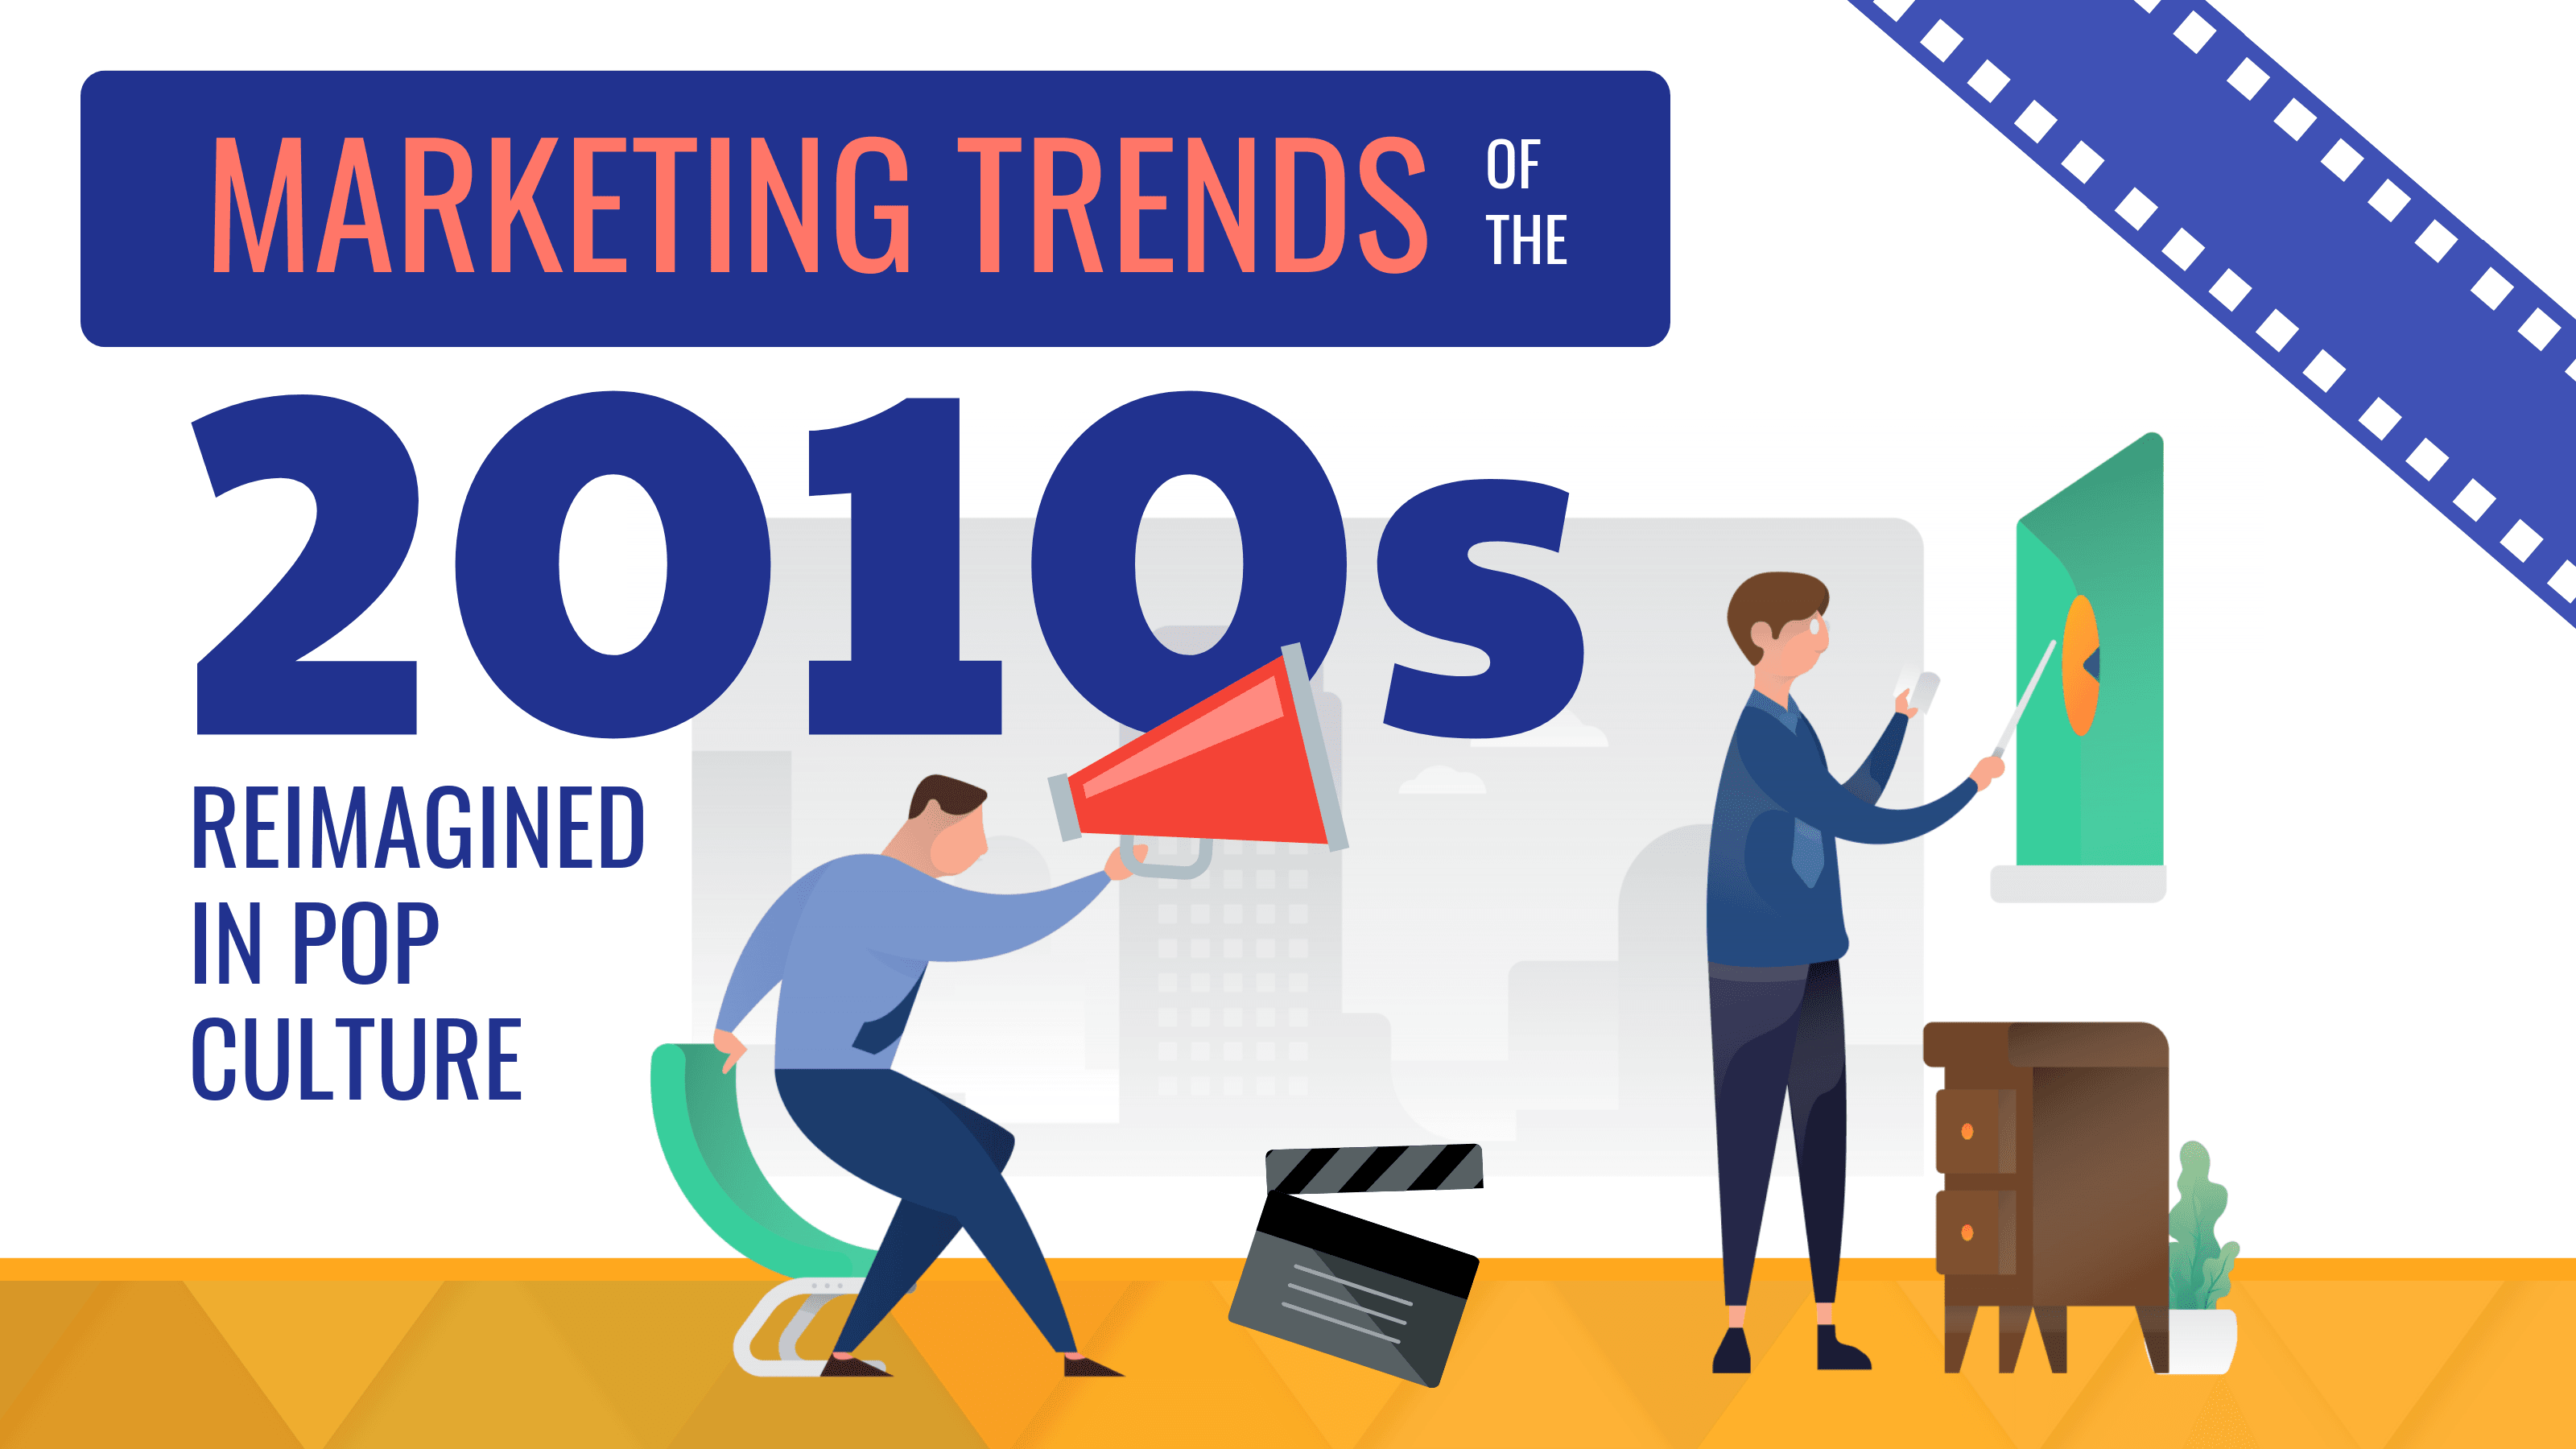 Marketing trends of the 2010s evolution of marketing